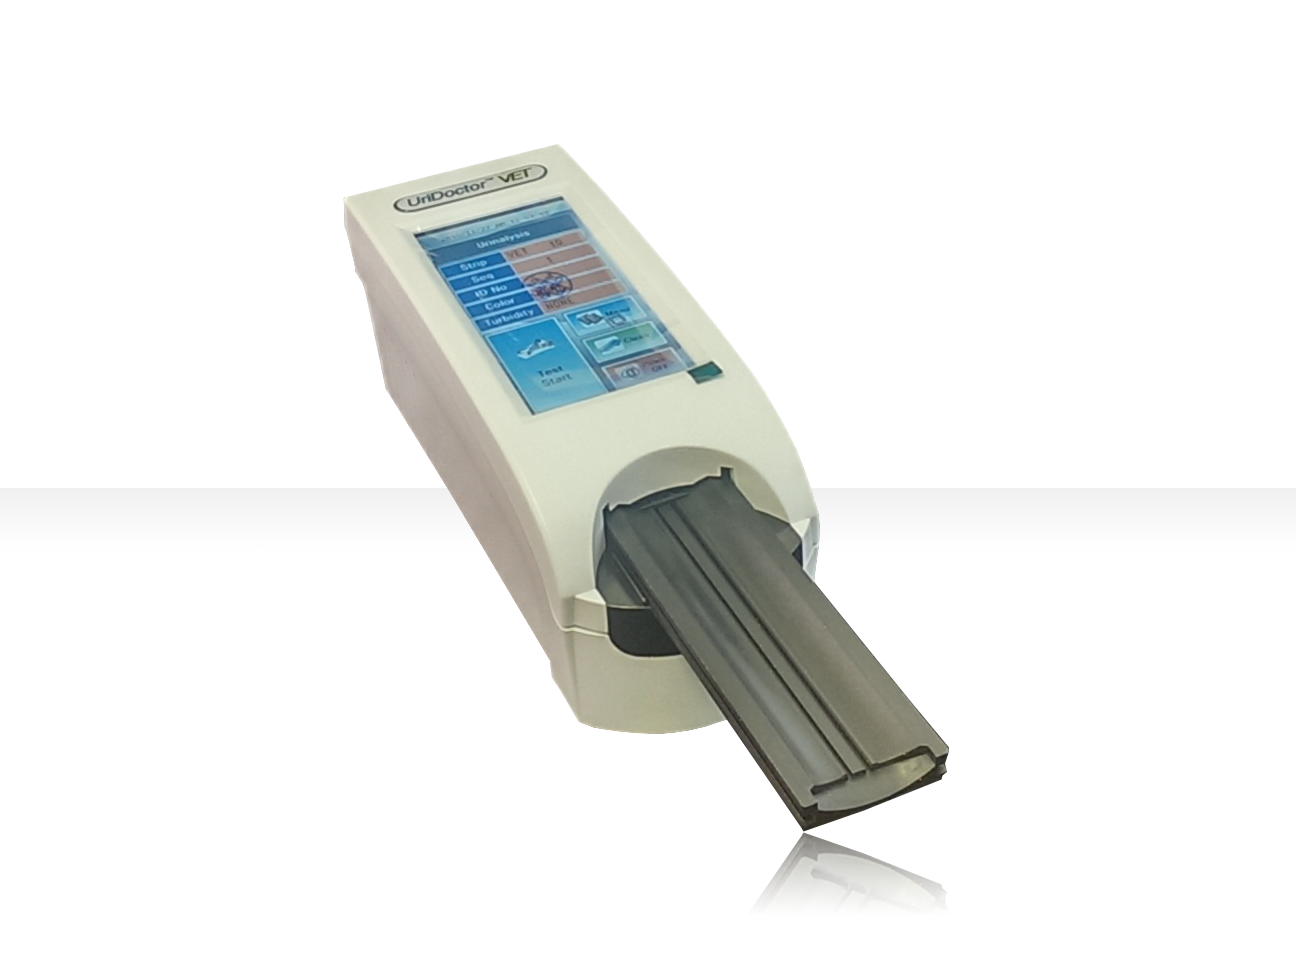 UriDoctor urine analyser for use with Health Mate Vet 10 / 11AC / 2AC Small and portable, upto 2000 results can be stored in the analysers memory to be easily exported to PC. Results available in 60 seconds (general mode) or for quick mode 30 seconds. The UriDoctor VET is a urine strip analysing device. The reader is semiautomatic, the forwarding, reading and evaluating are automated.